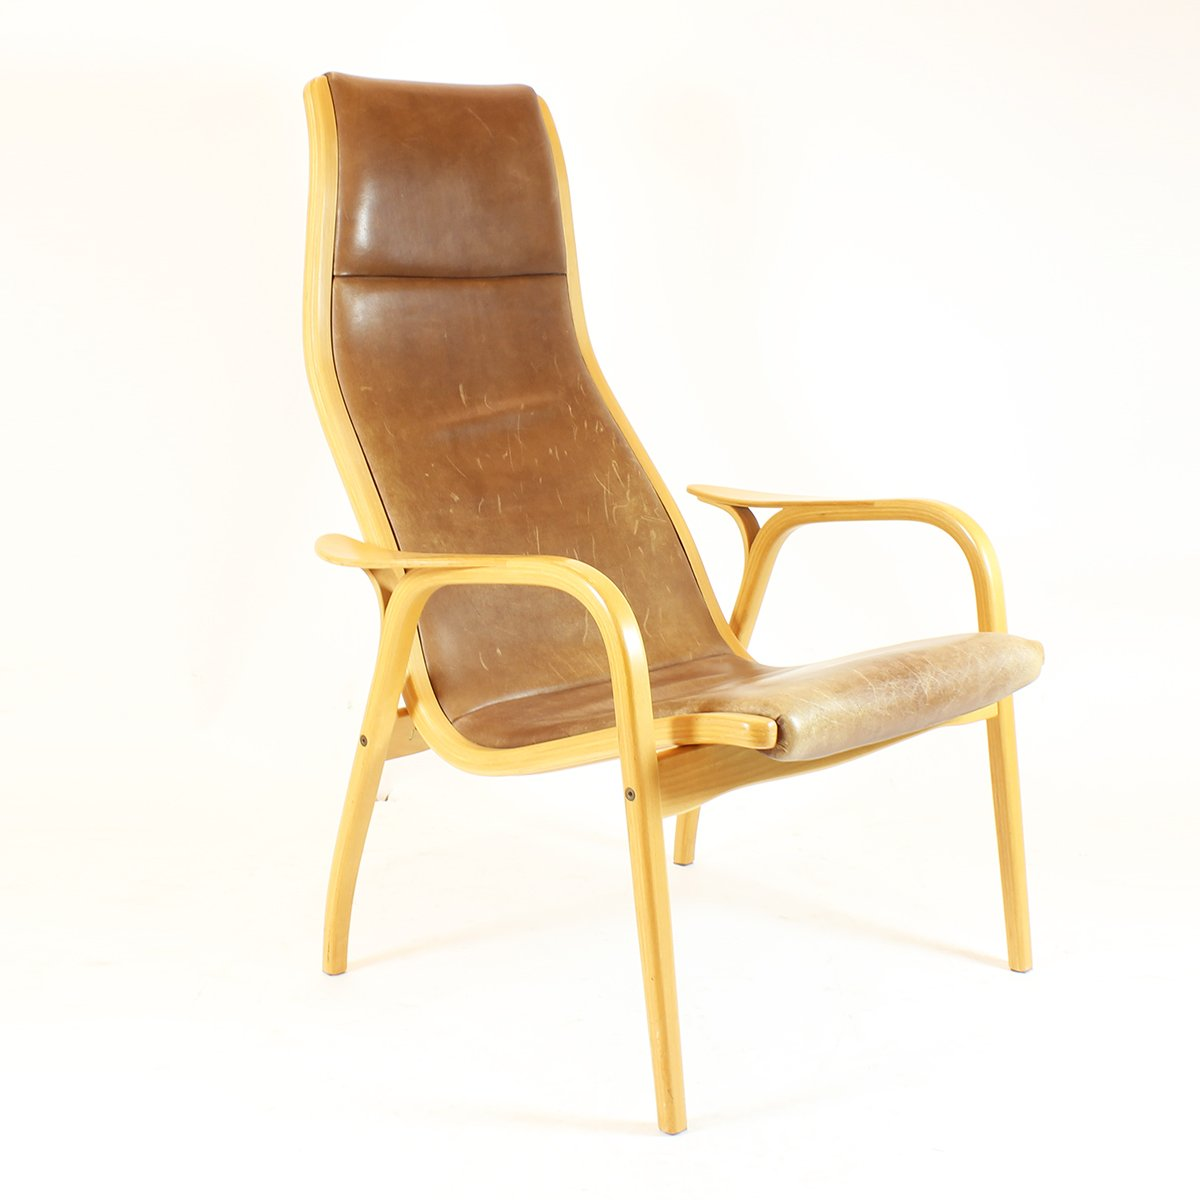 Lamino Lounge Chair by Yngve Ekström for Swedese, 1950s for sale at Pamono